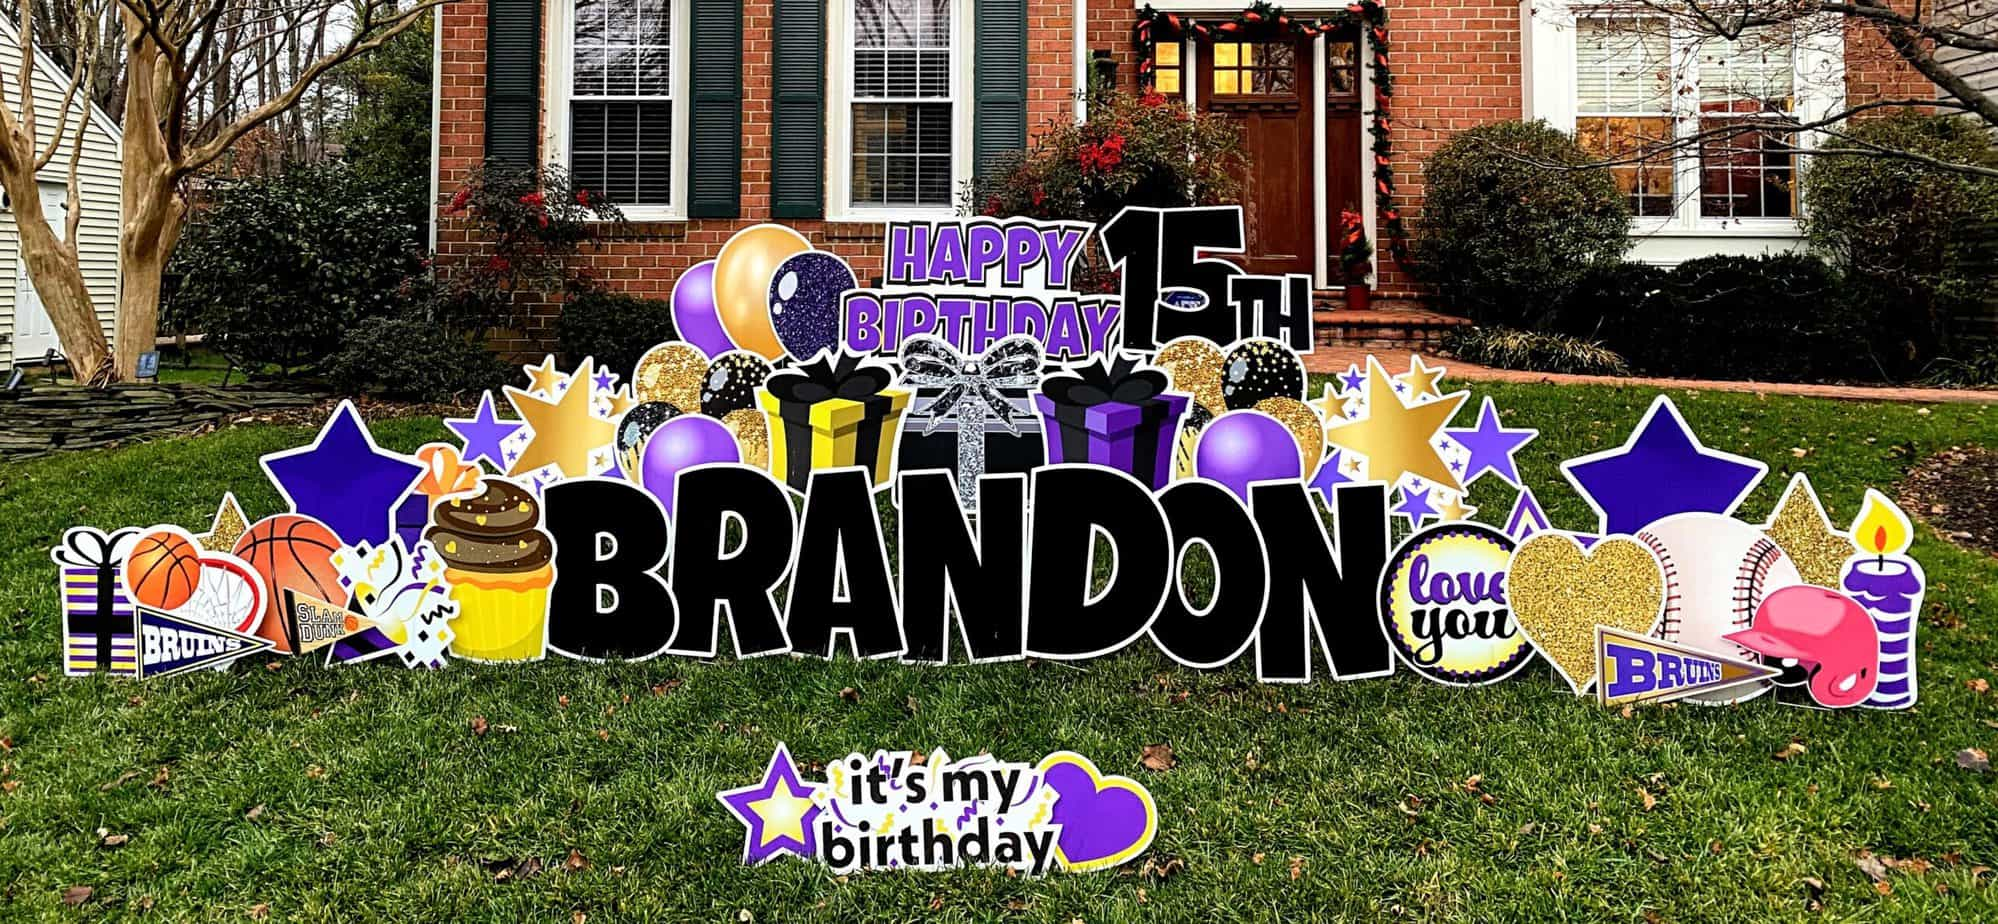 brandon 15th birthday yard sign burke va